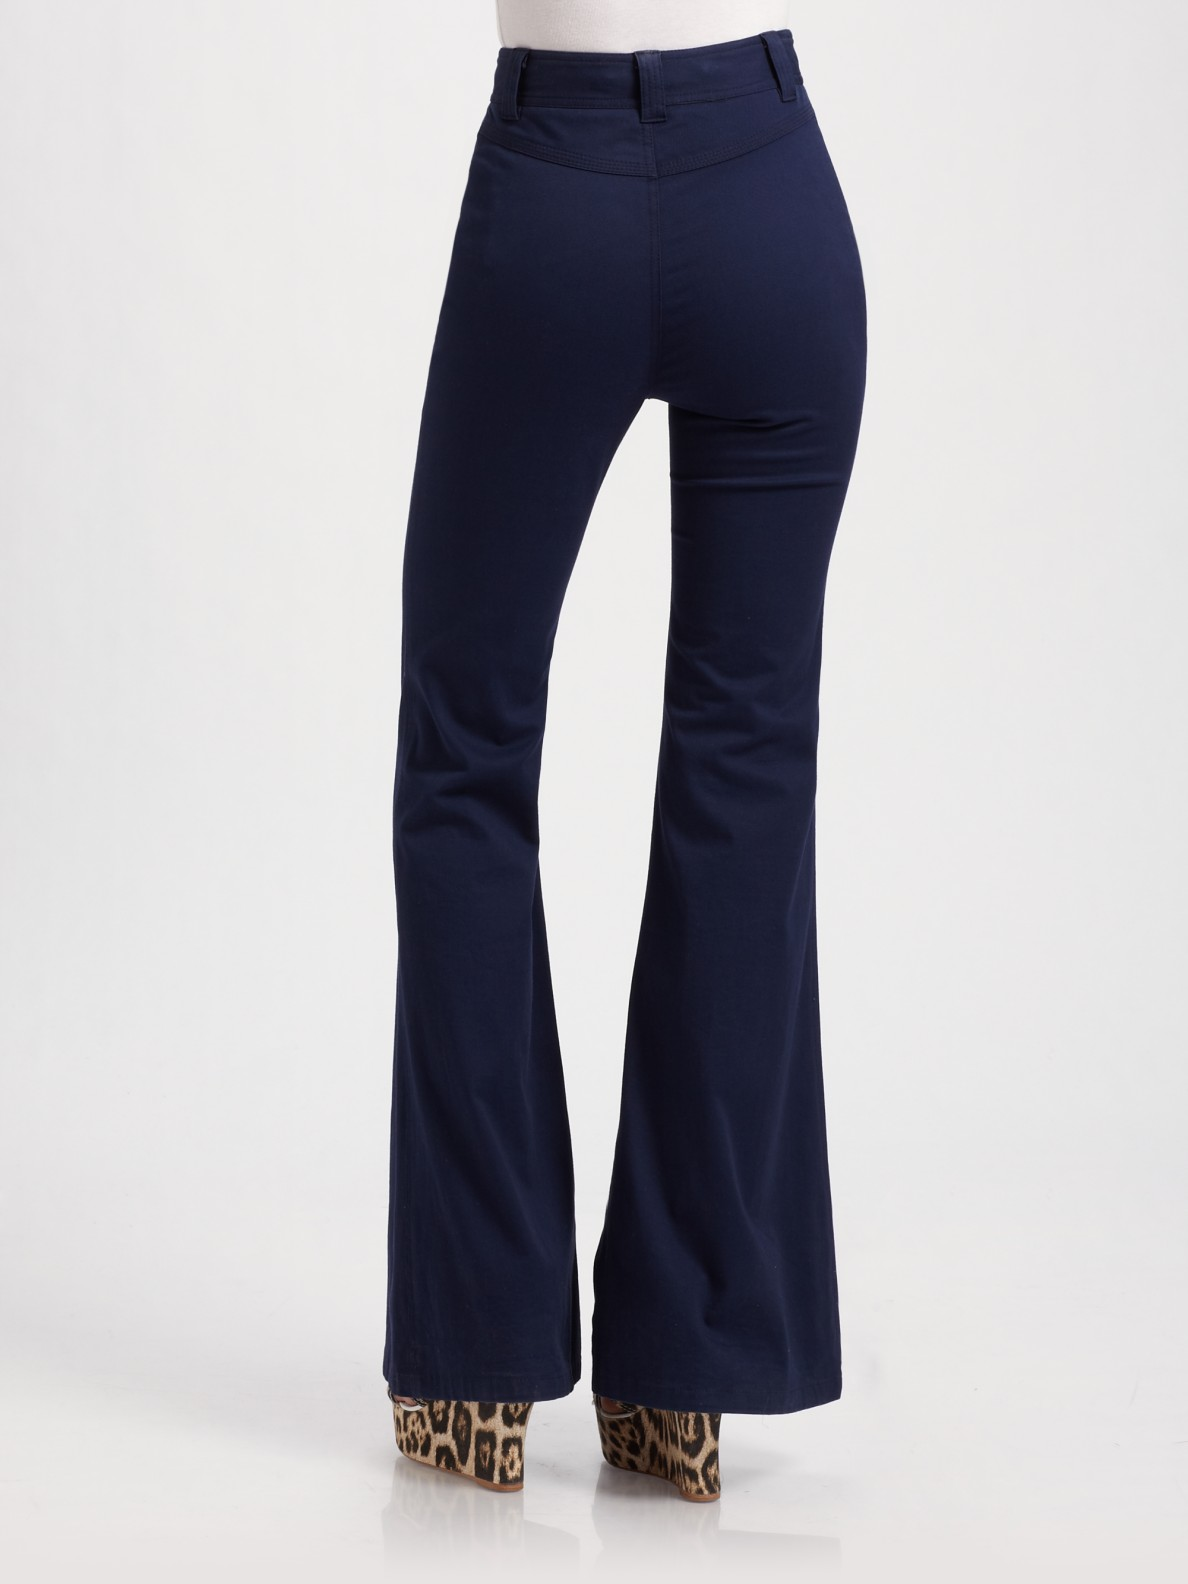 Alice   olivia High-waist Bell Bottom Pants in Blue | Lyst